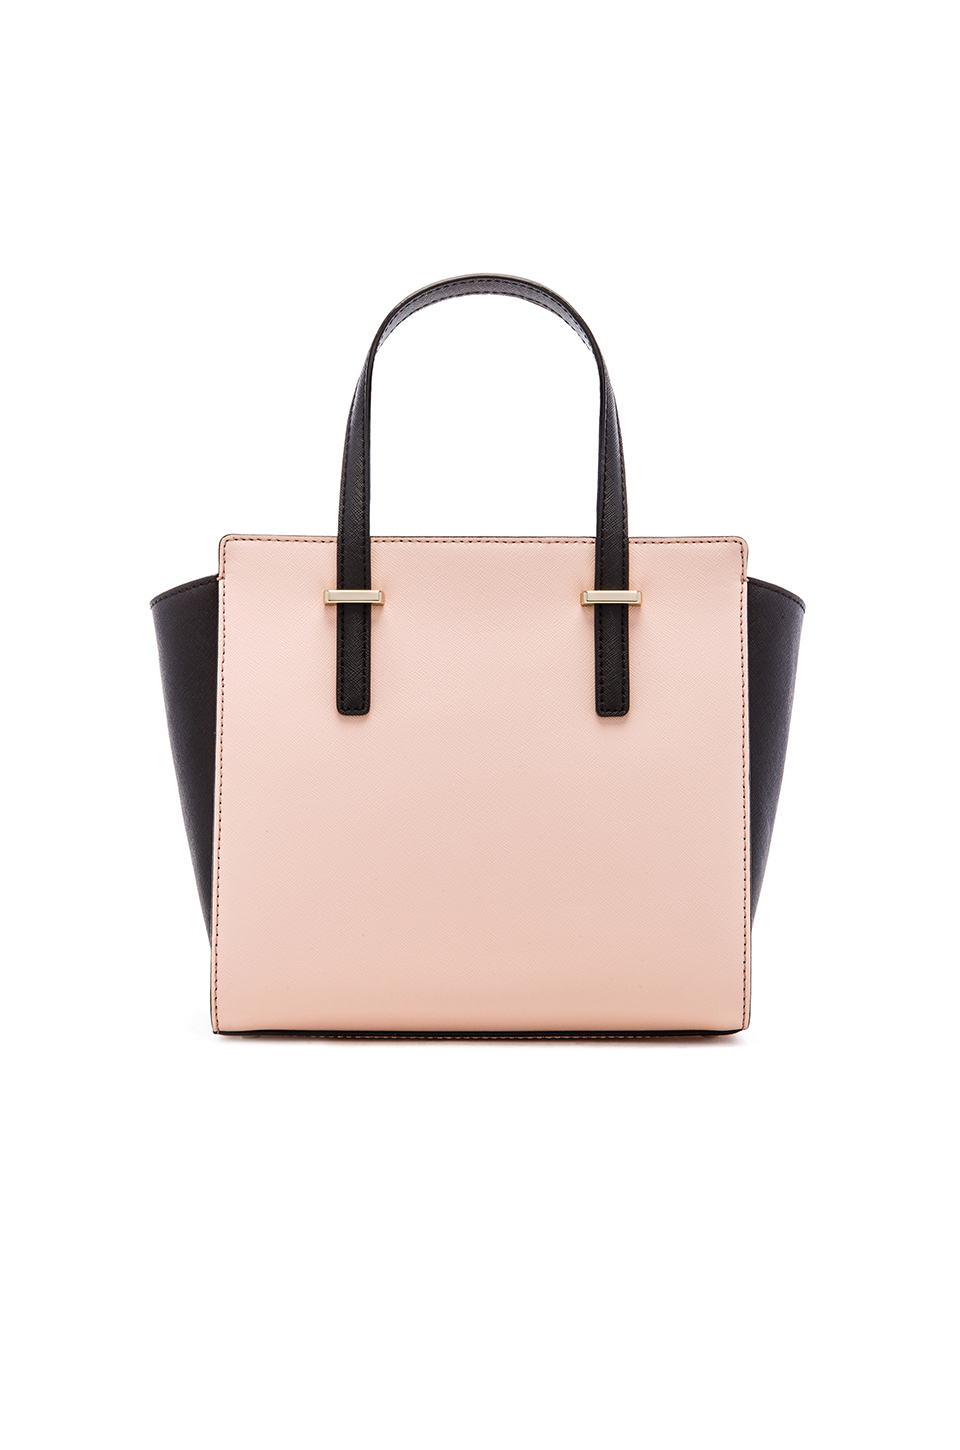 Kate spade new york Small Hayden Shoulder Bag in Pink | Lyst